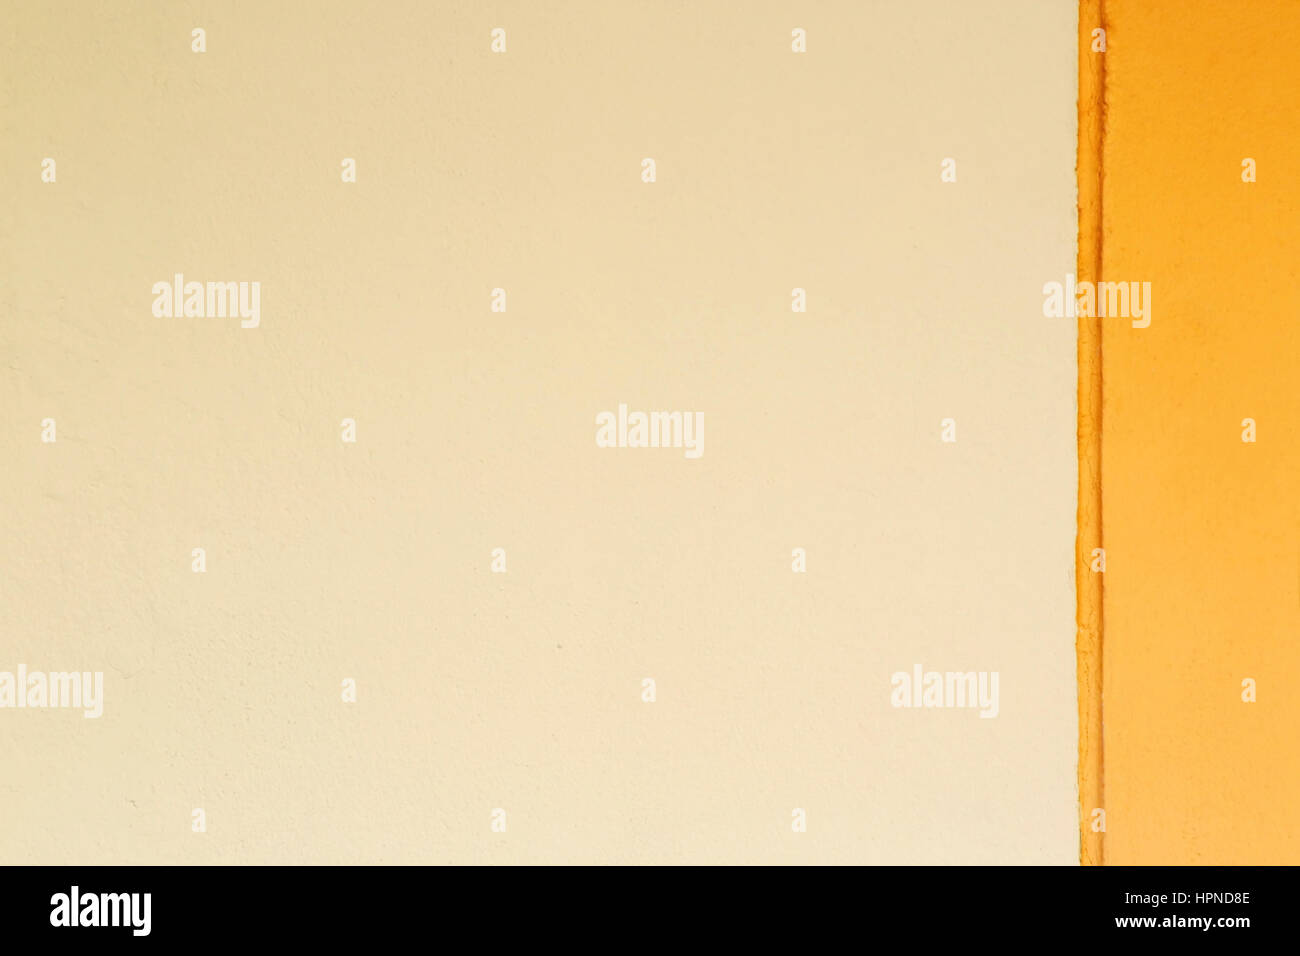 Two Tone Wall For Wallpaper or Background Stock Photo